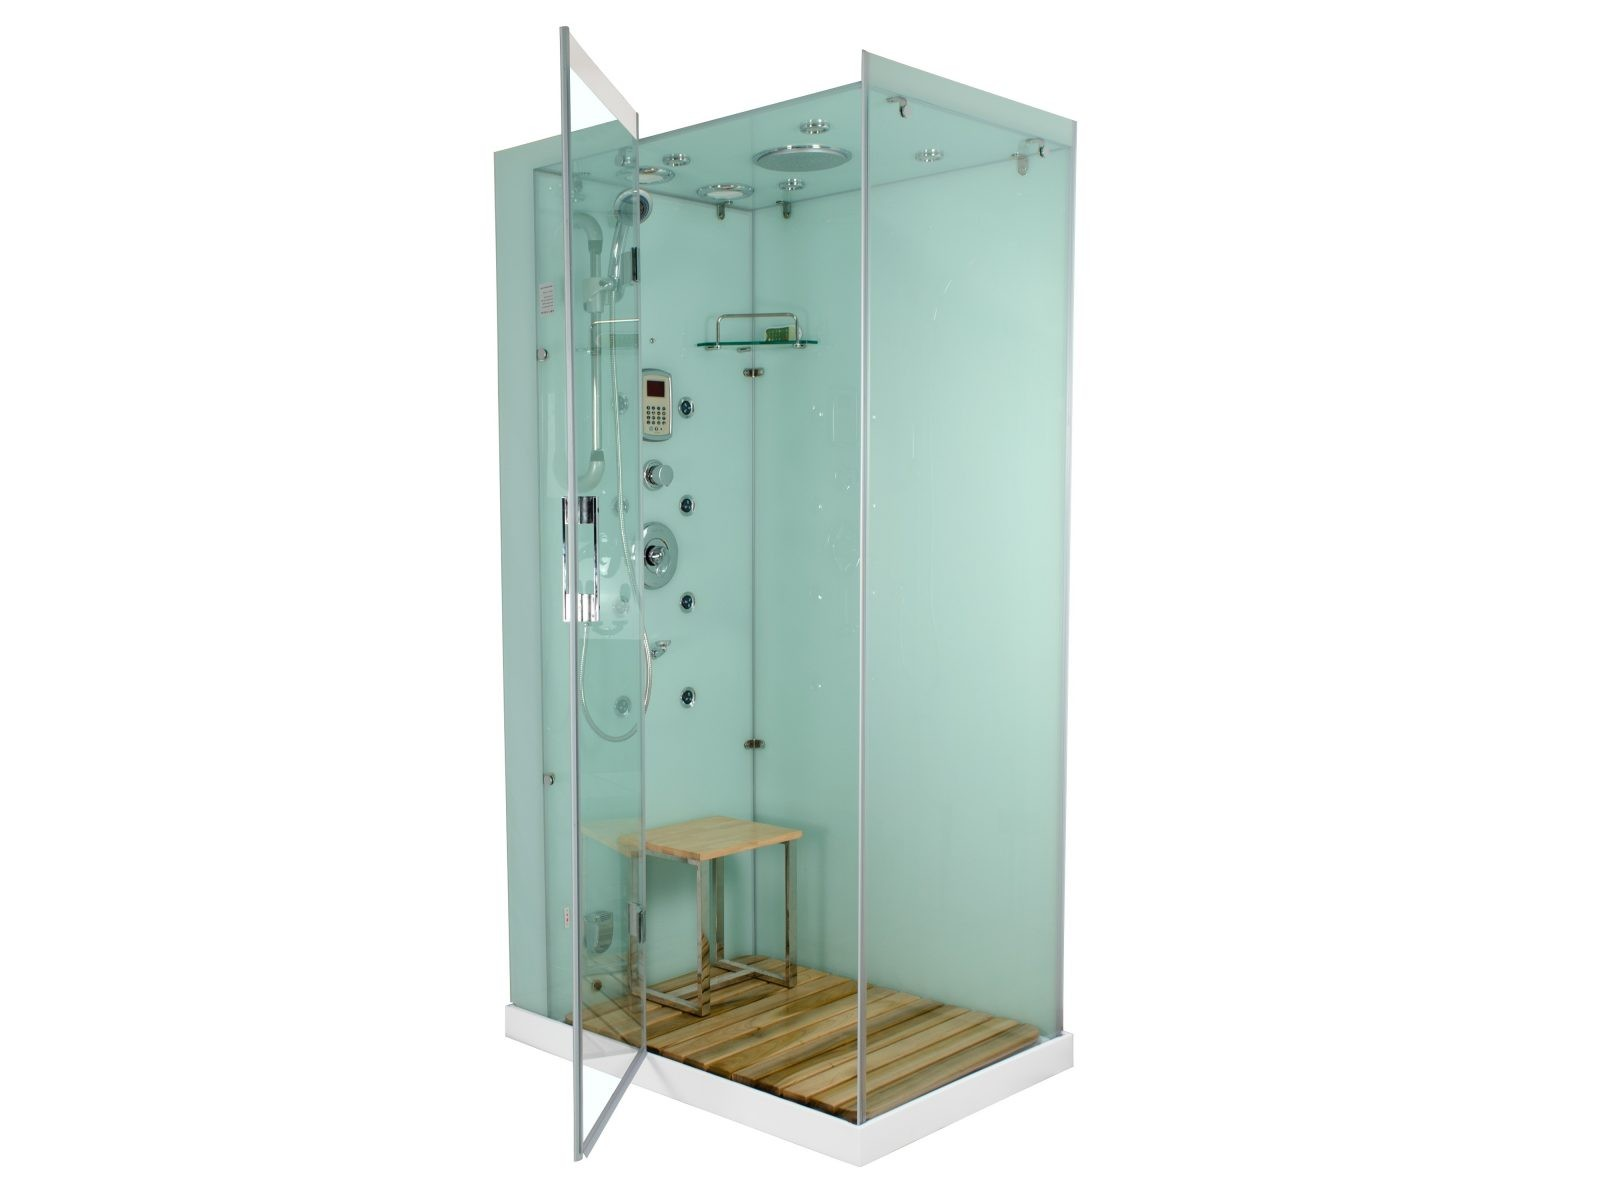 cabin ce china fktexzbuhchg m generator combine with sauna certified economical product shower steam l room house box